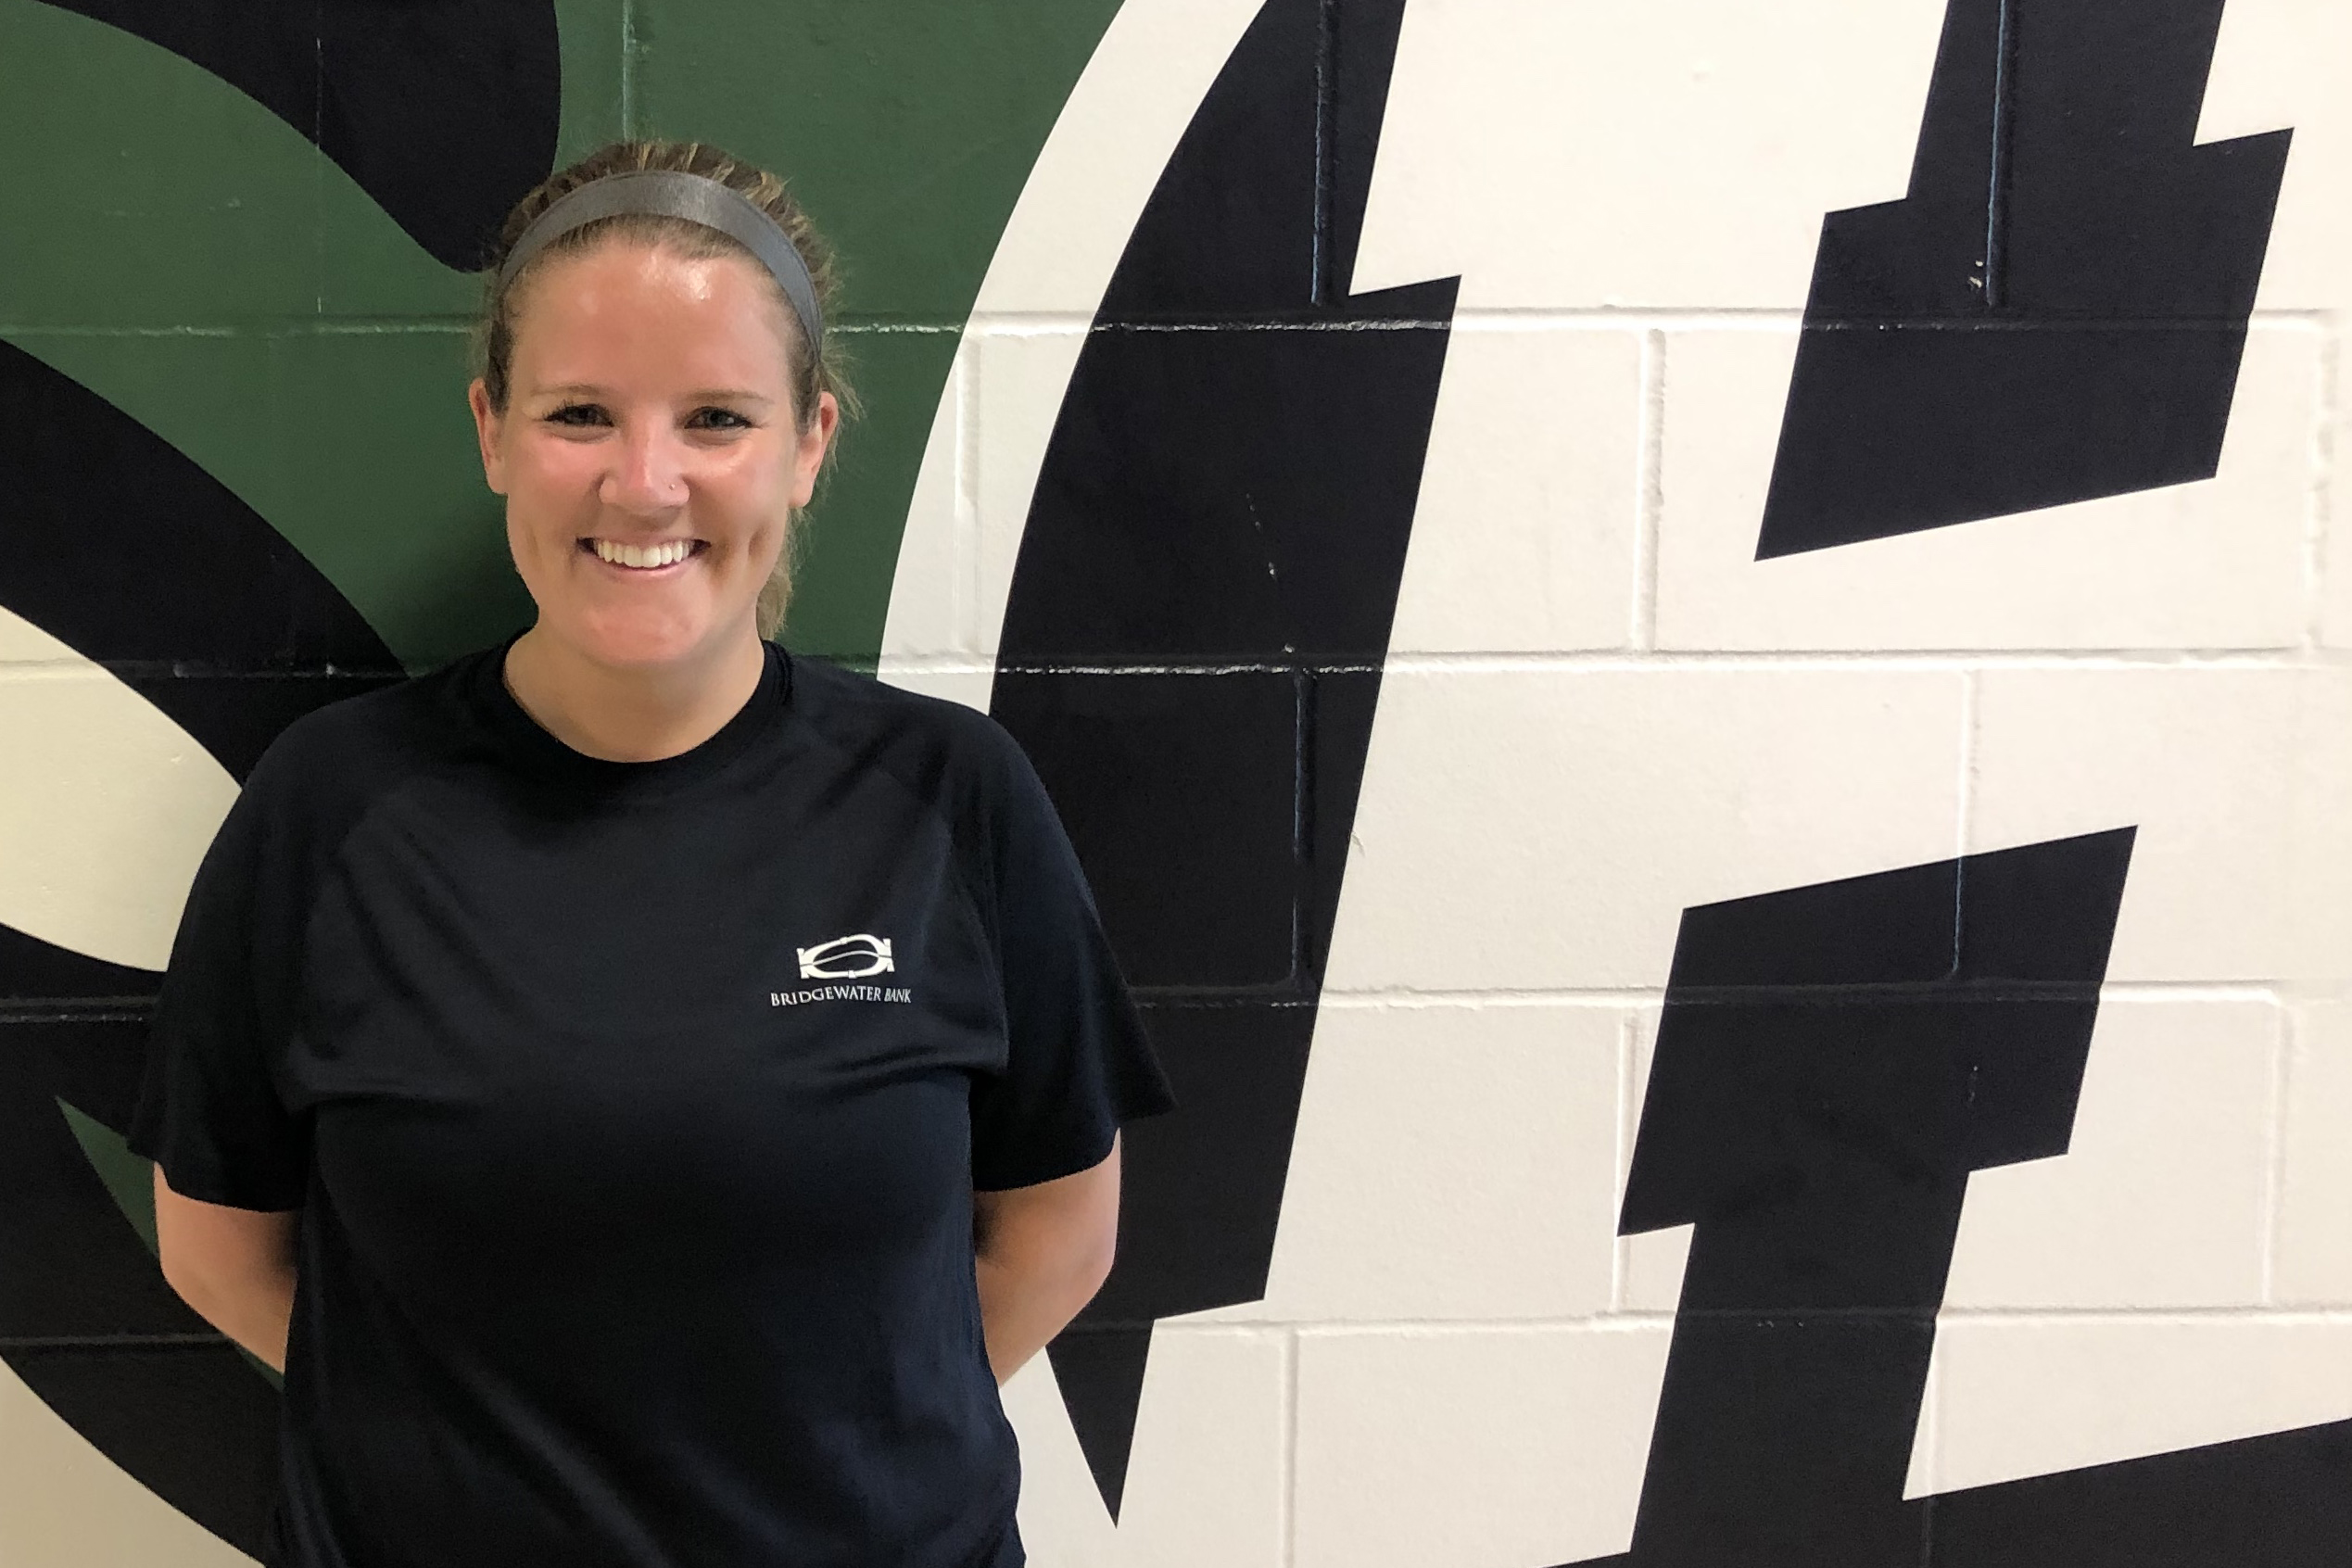 Crocker Hired as Holy Family Girls Soccer Coach Featured Image.